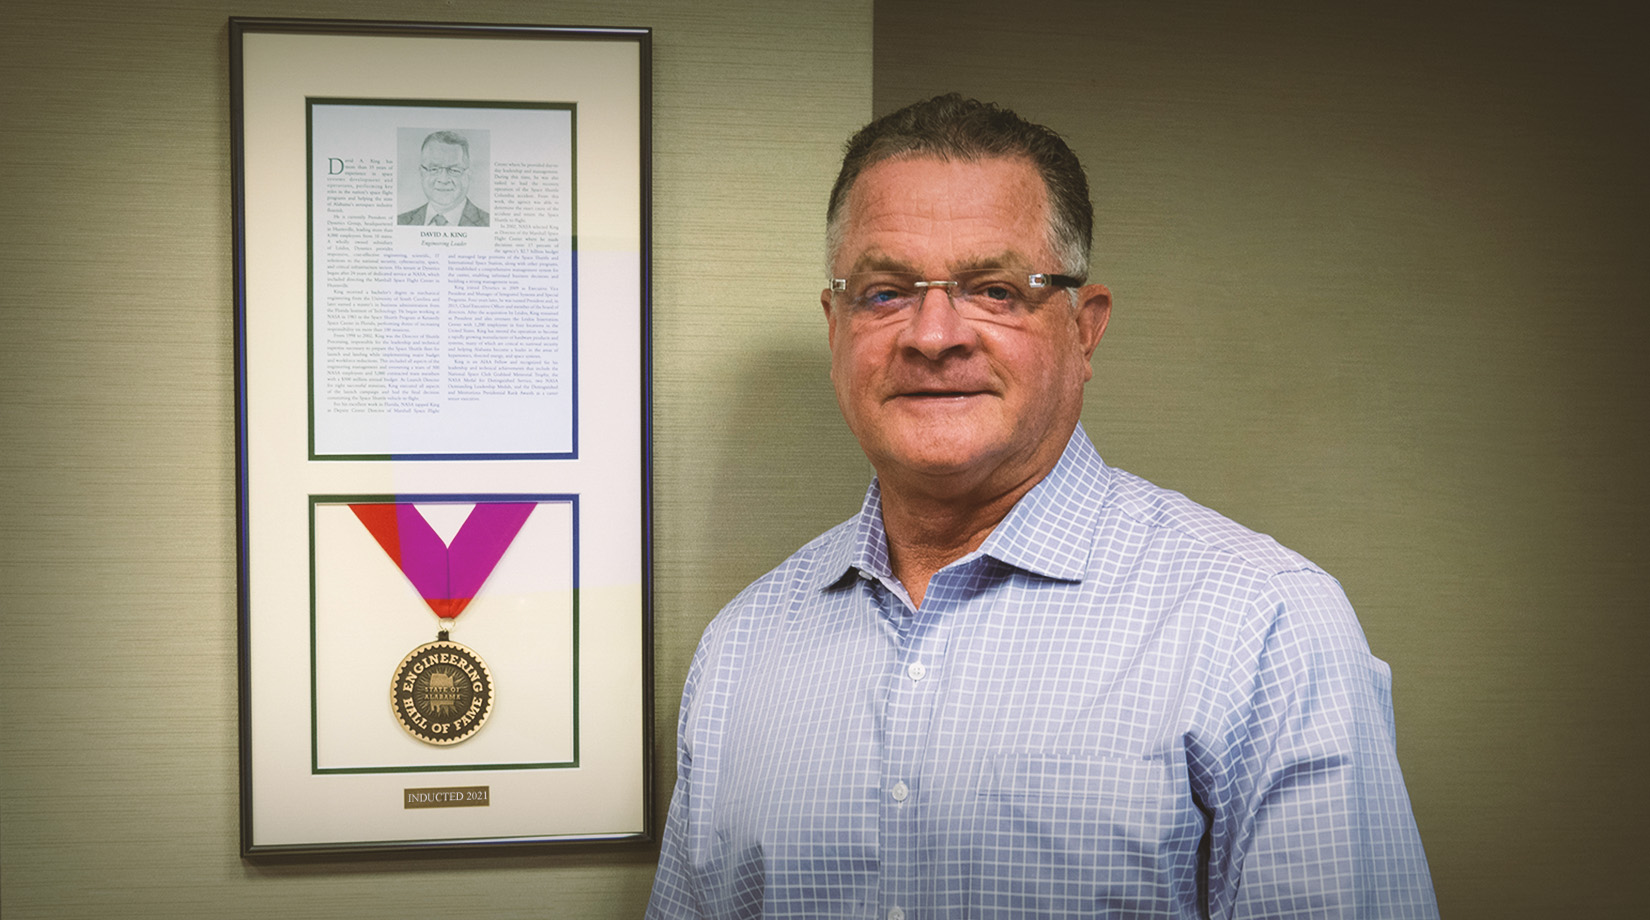 Dave King Joins State of Alabama Engineering Hall of Fame as 2021 Inductee thumbnail image